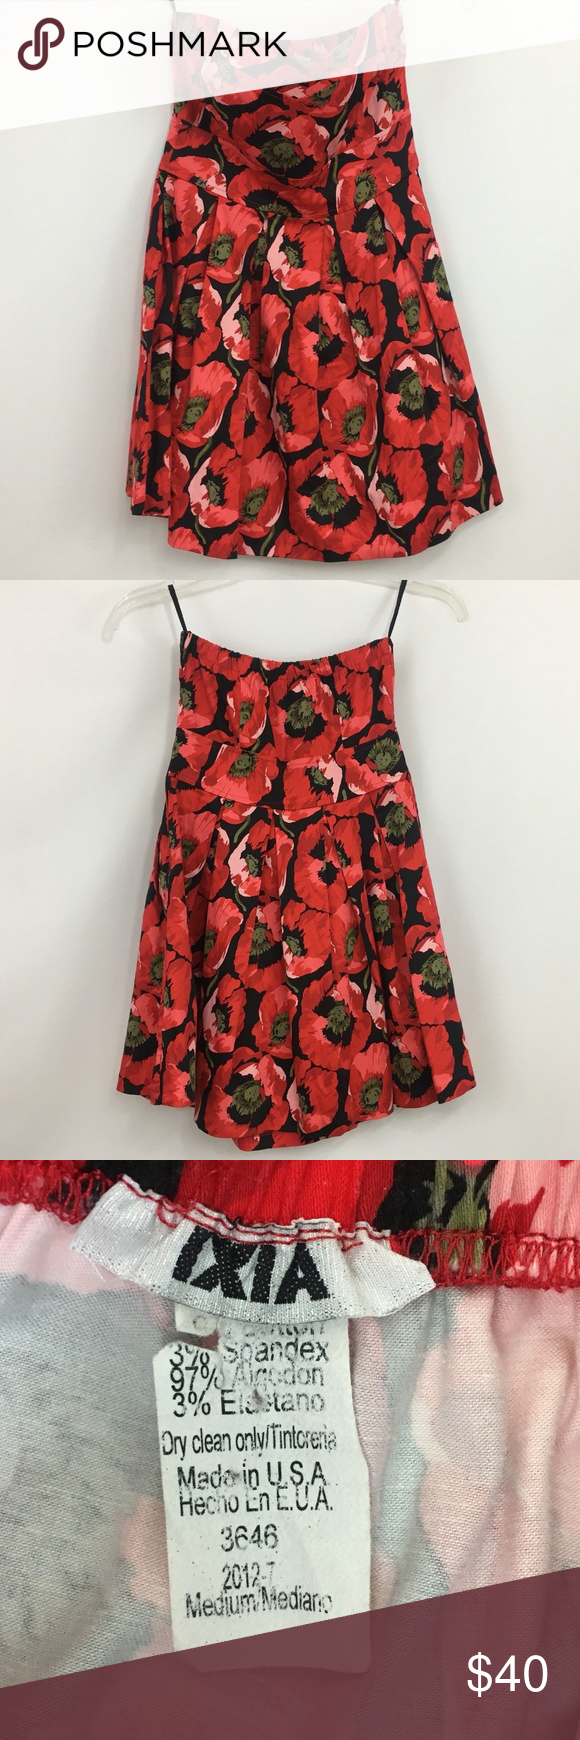 Ixia dress size medium black red flowers in my posh